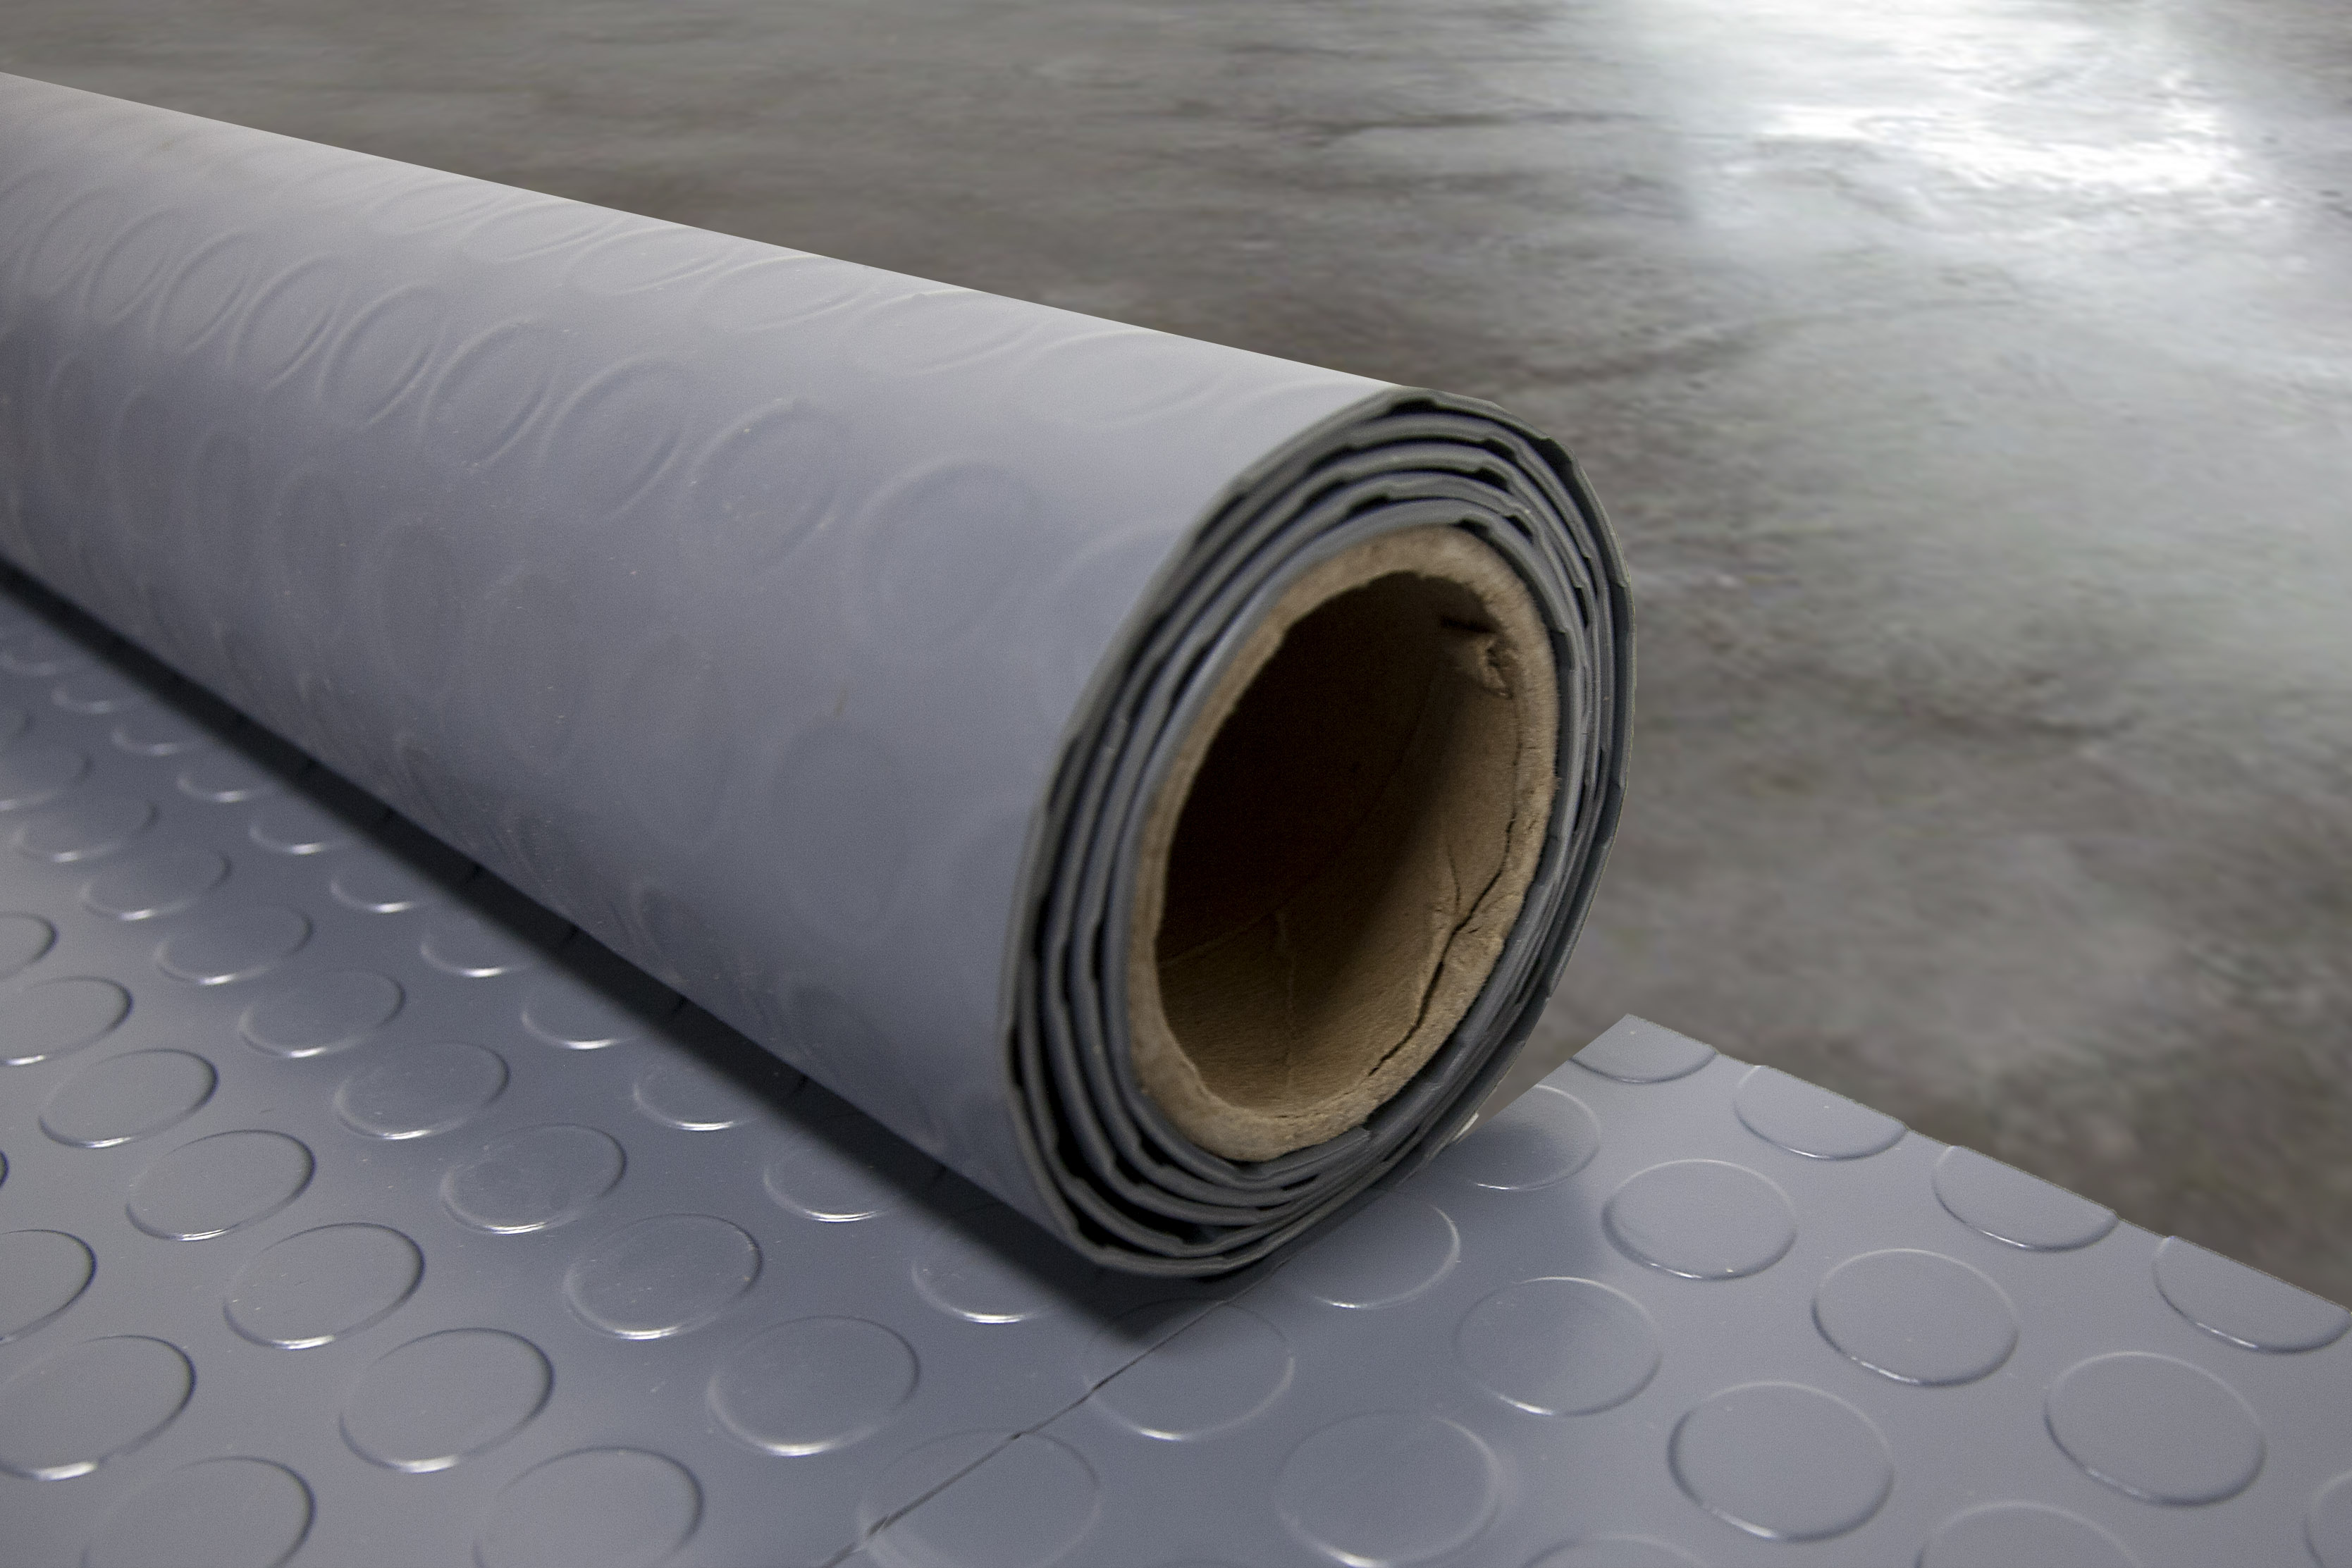 Installing Garage Flooring In Cold Weather - Mate flex flooring